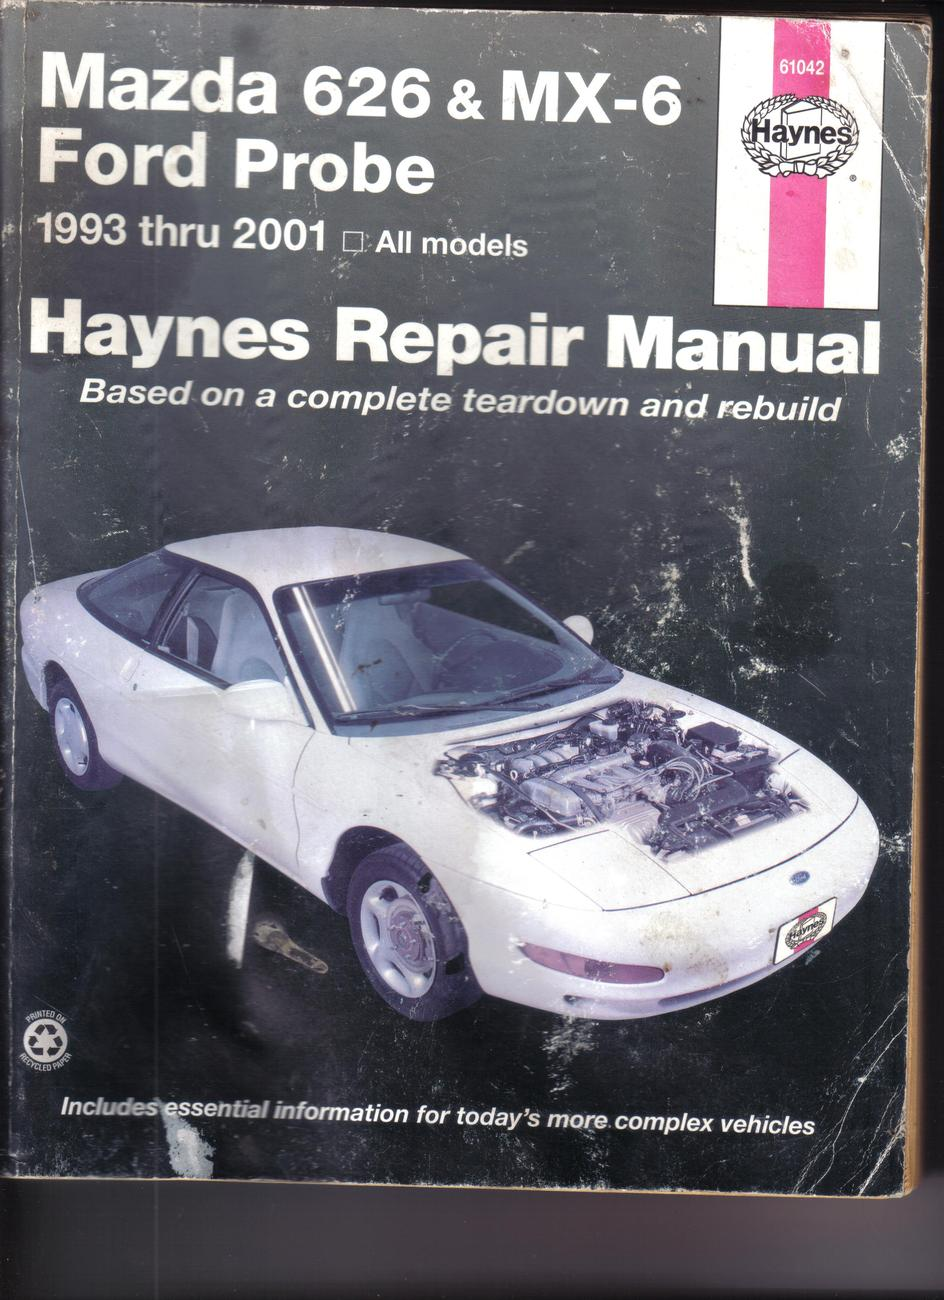 Haynes mazda 626 mx 6 ford probe  93  10 001